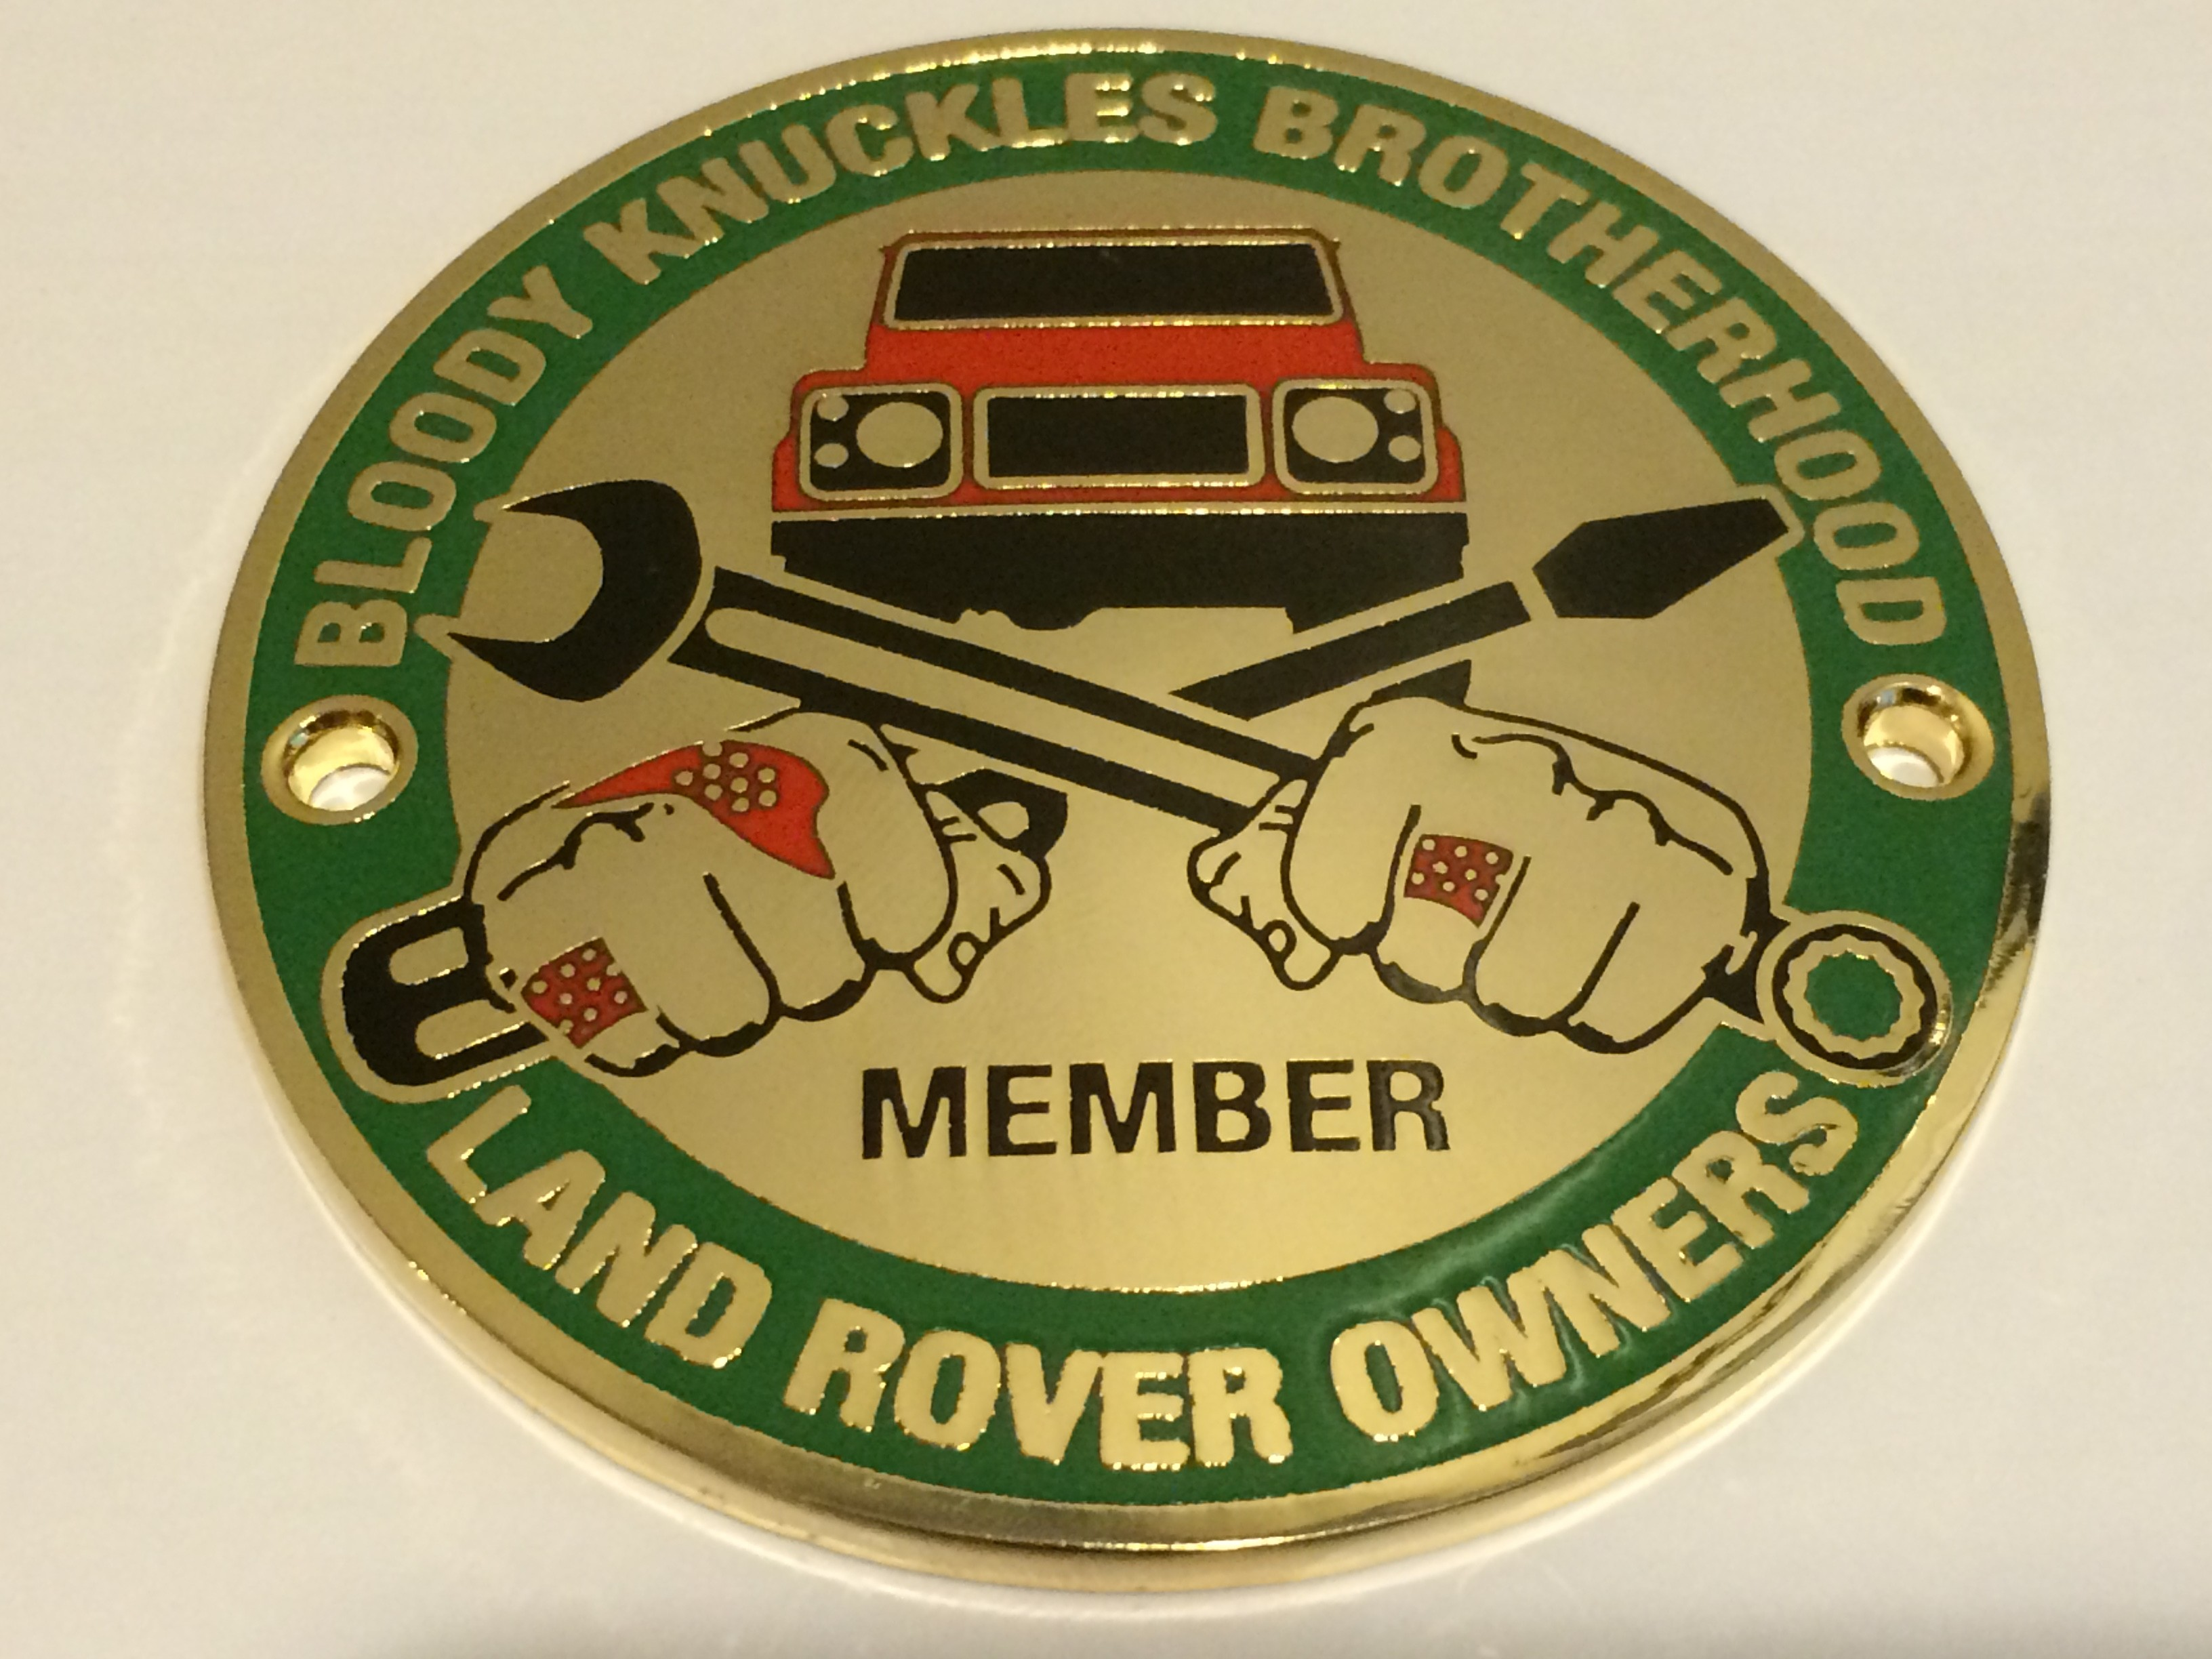 """Bloody Knuckles Brotherhood: Member"" Round 3-inch Metal Grille Badge"